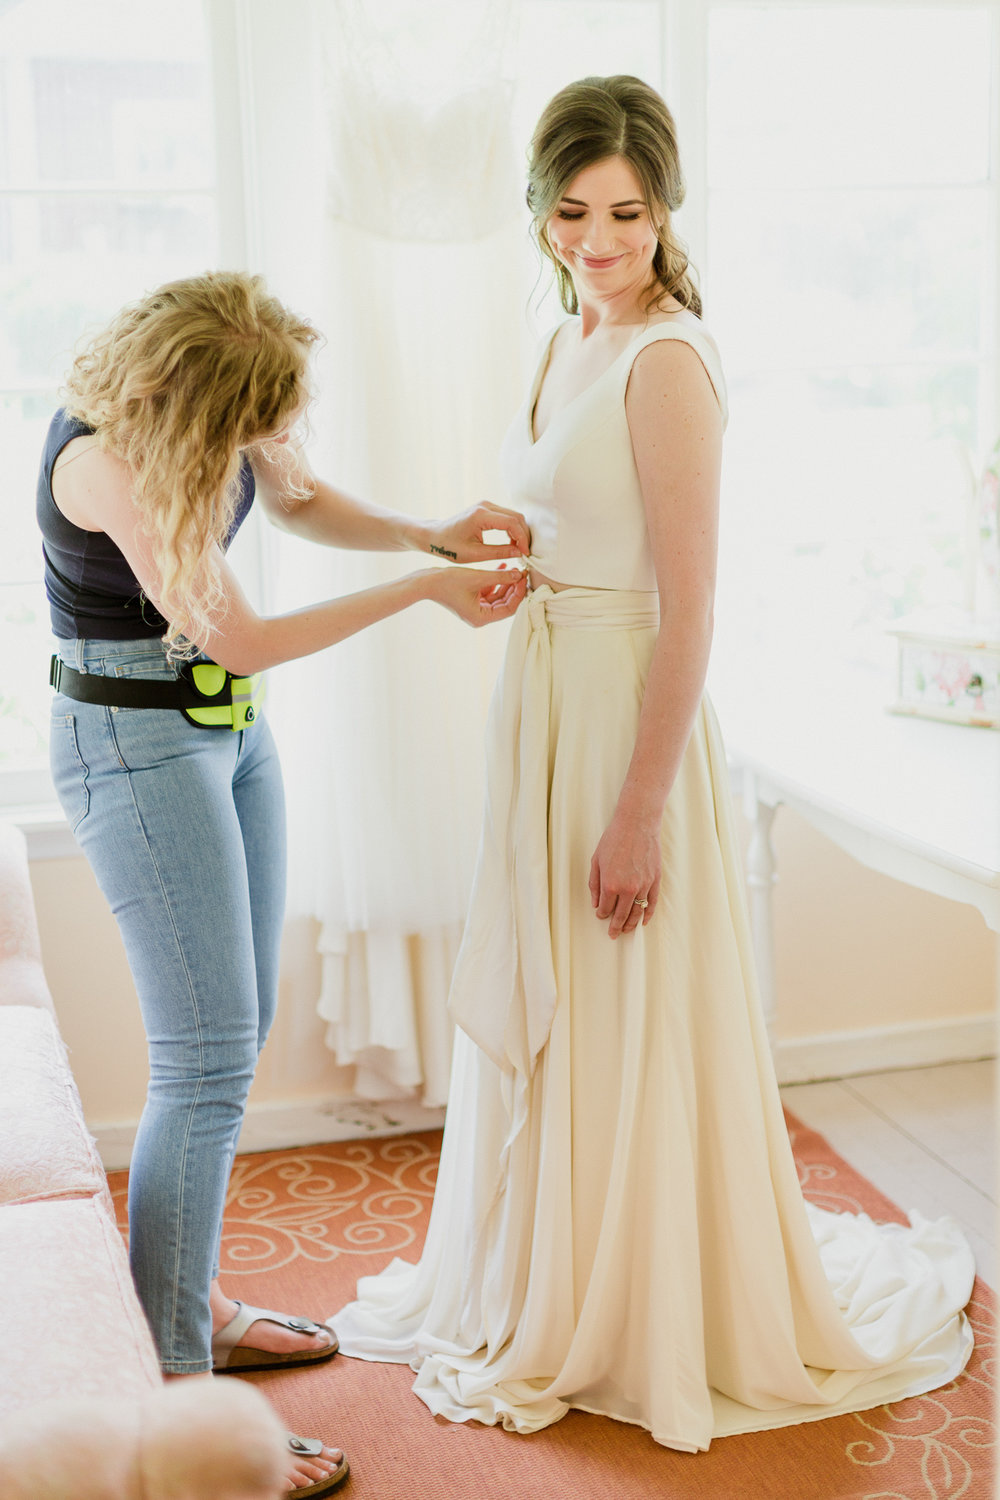 QueerWeddingStyledShootbyAlyssaLundPhotography-66.jpg